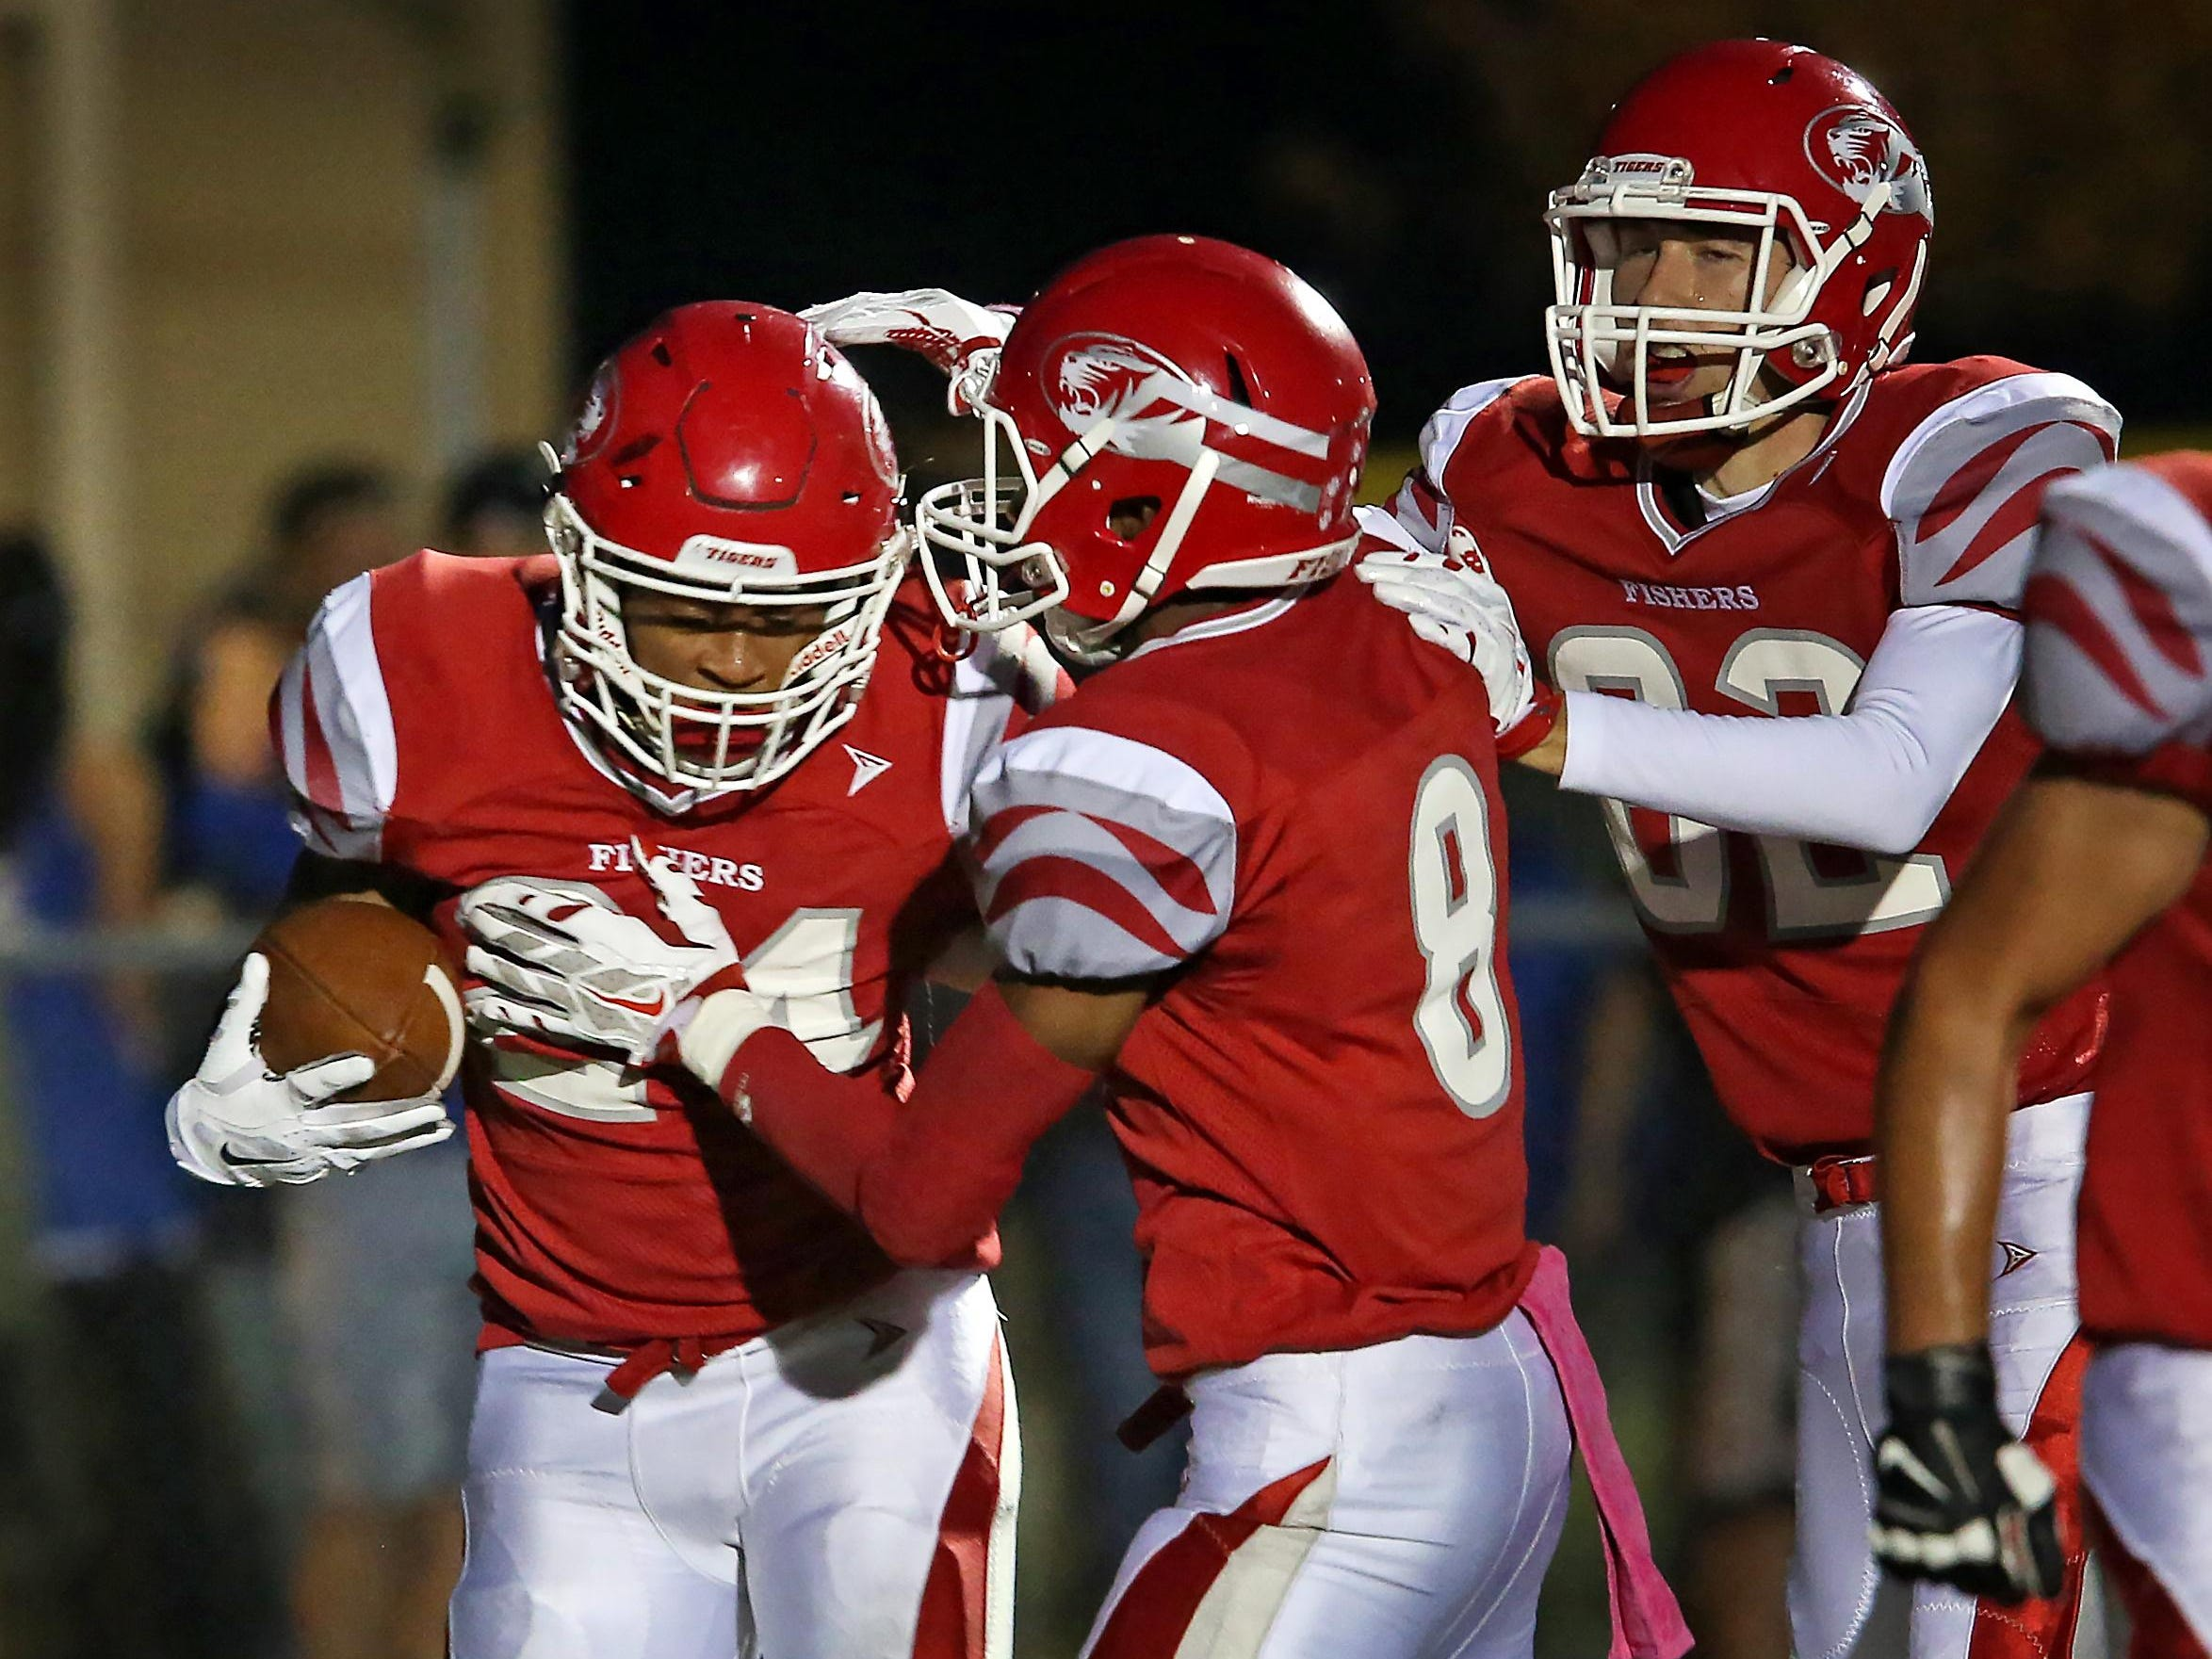 Jermaine Huddleston (left) is congratulated by teammates after he scored Fishers' first TD in the Tigers' win over Hamilton Southeastern.